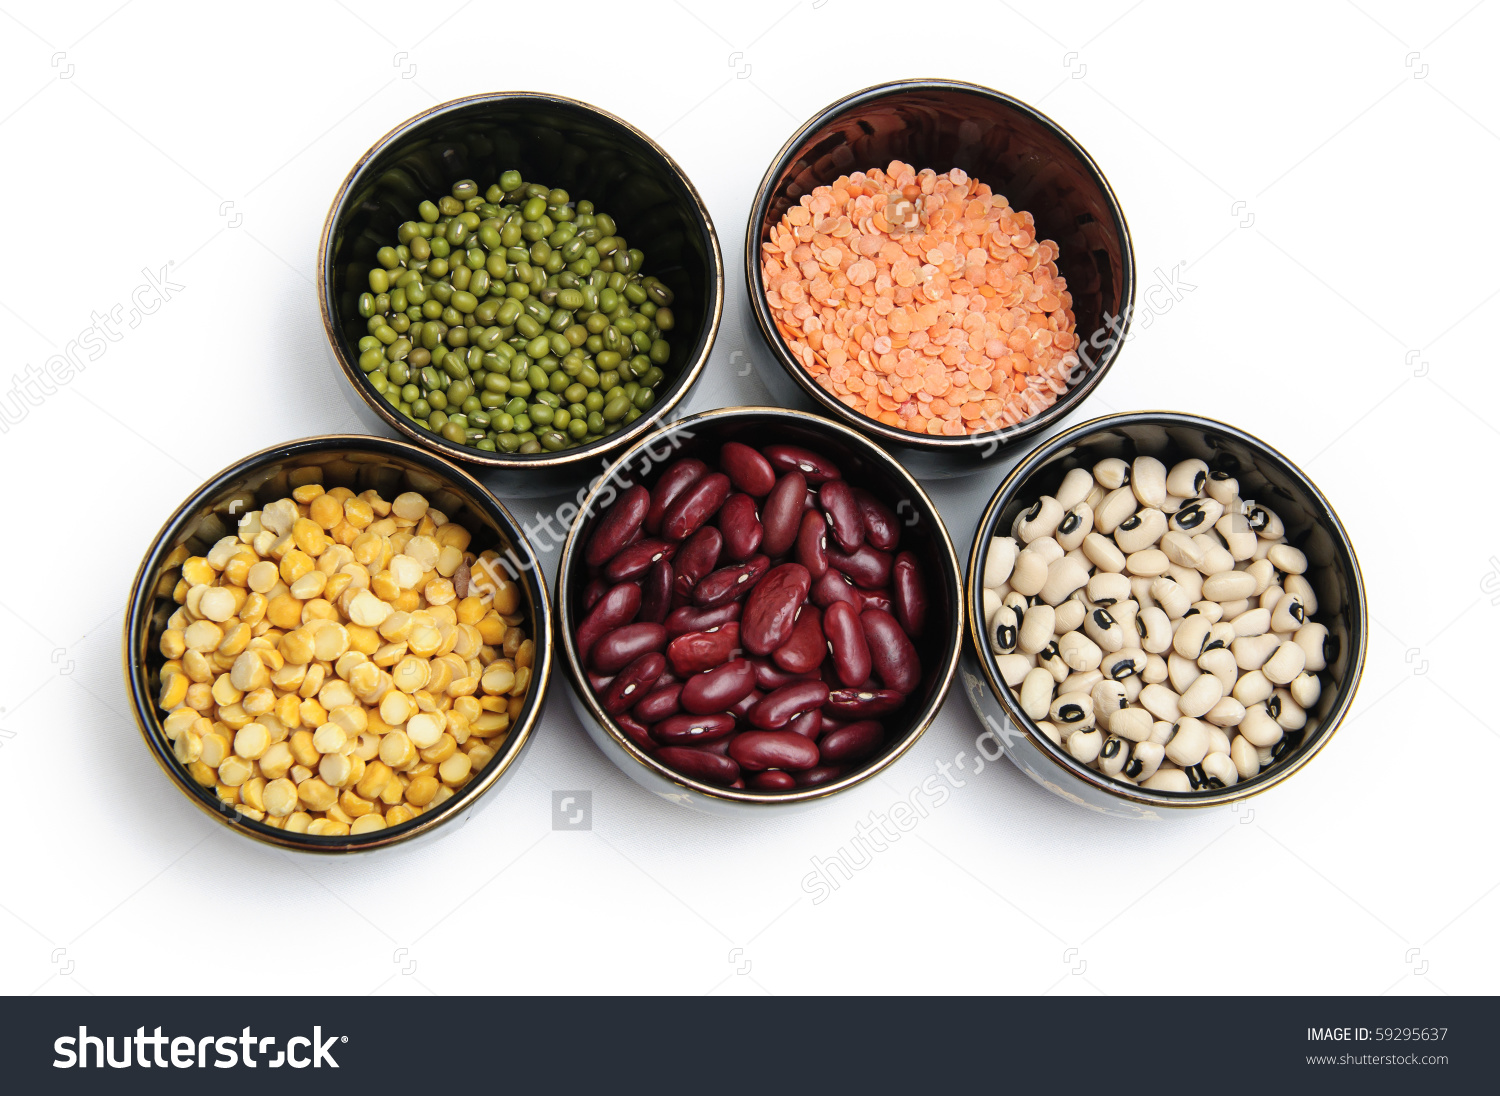 Various Lentils Pulses On White Background Stock Photo 59295637.